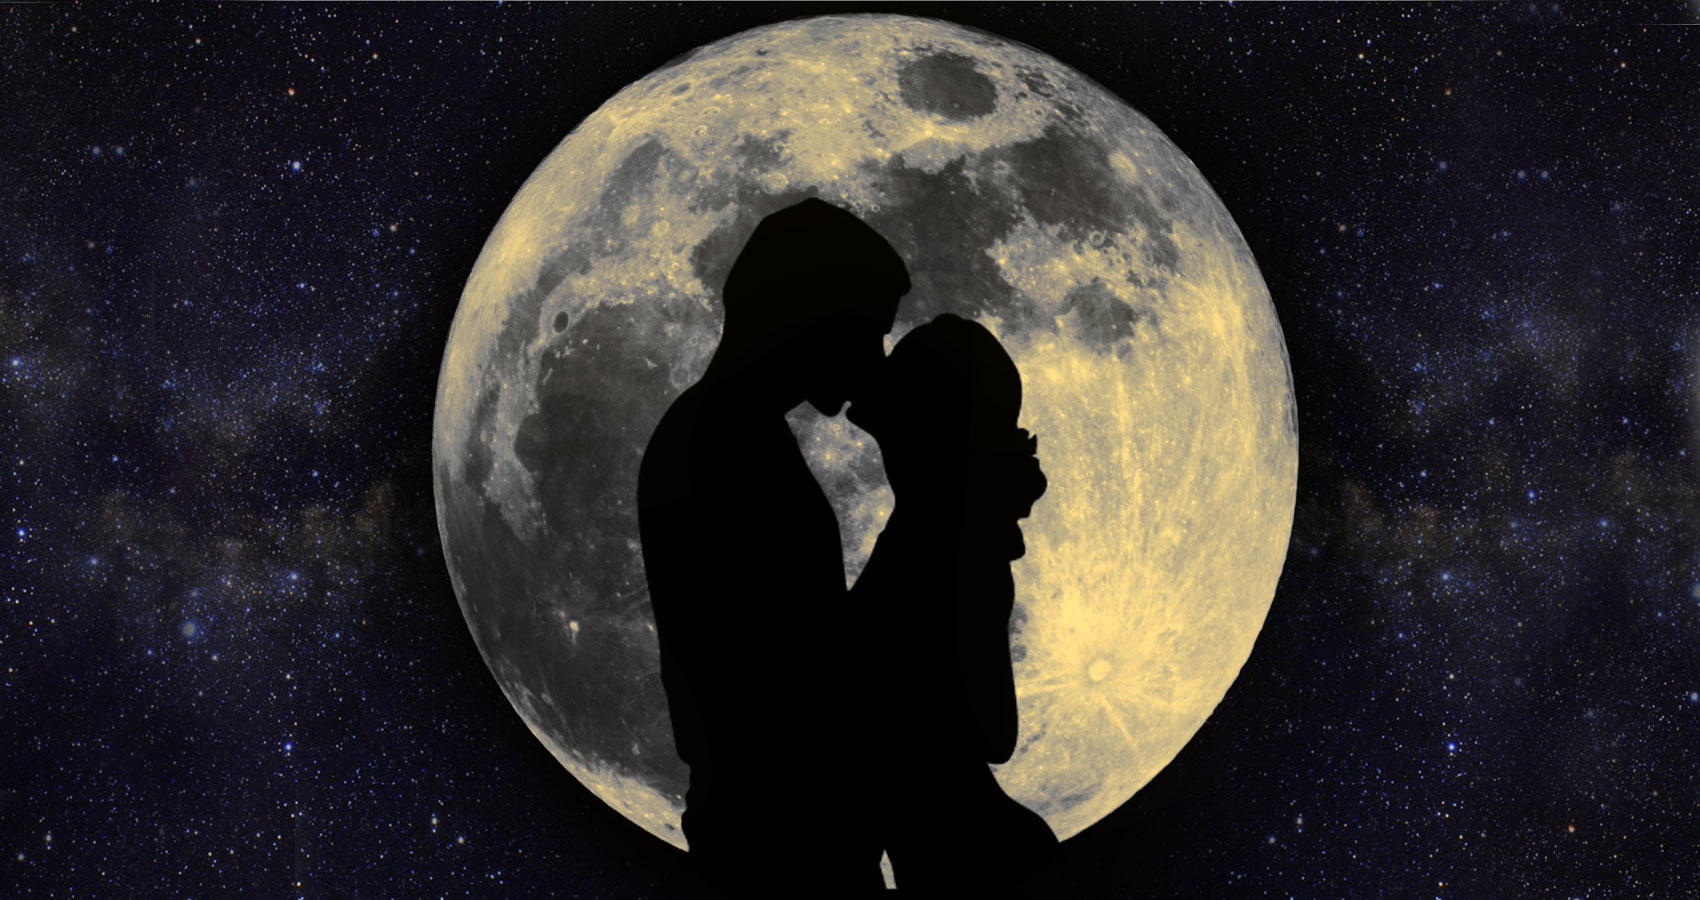 Lunar Love written by Meno Silencio at Spillwords.com